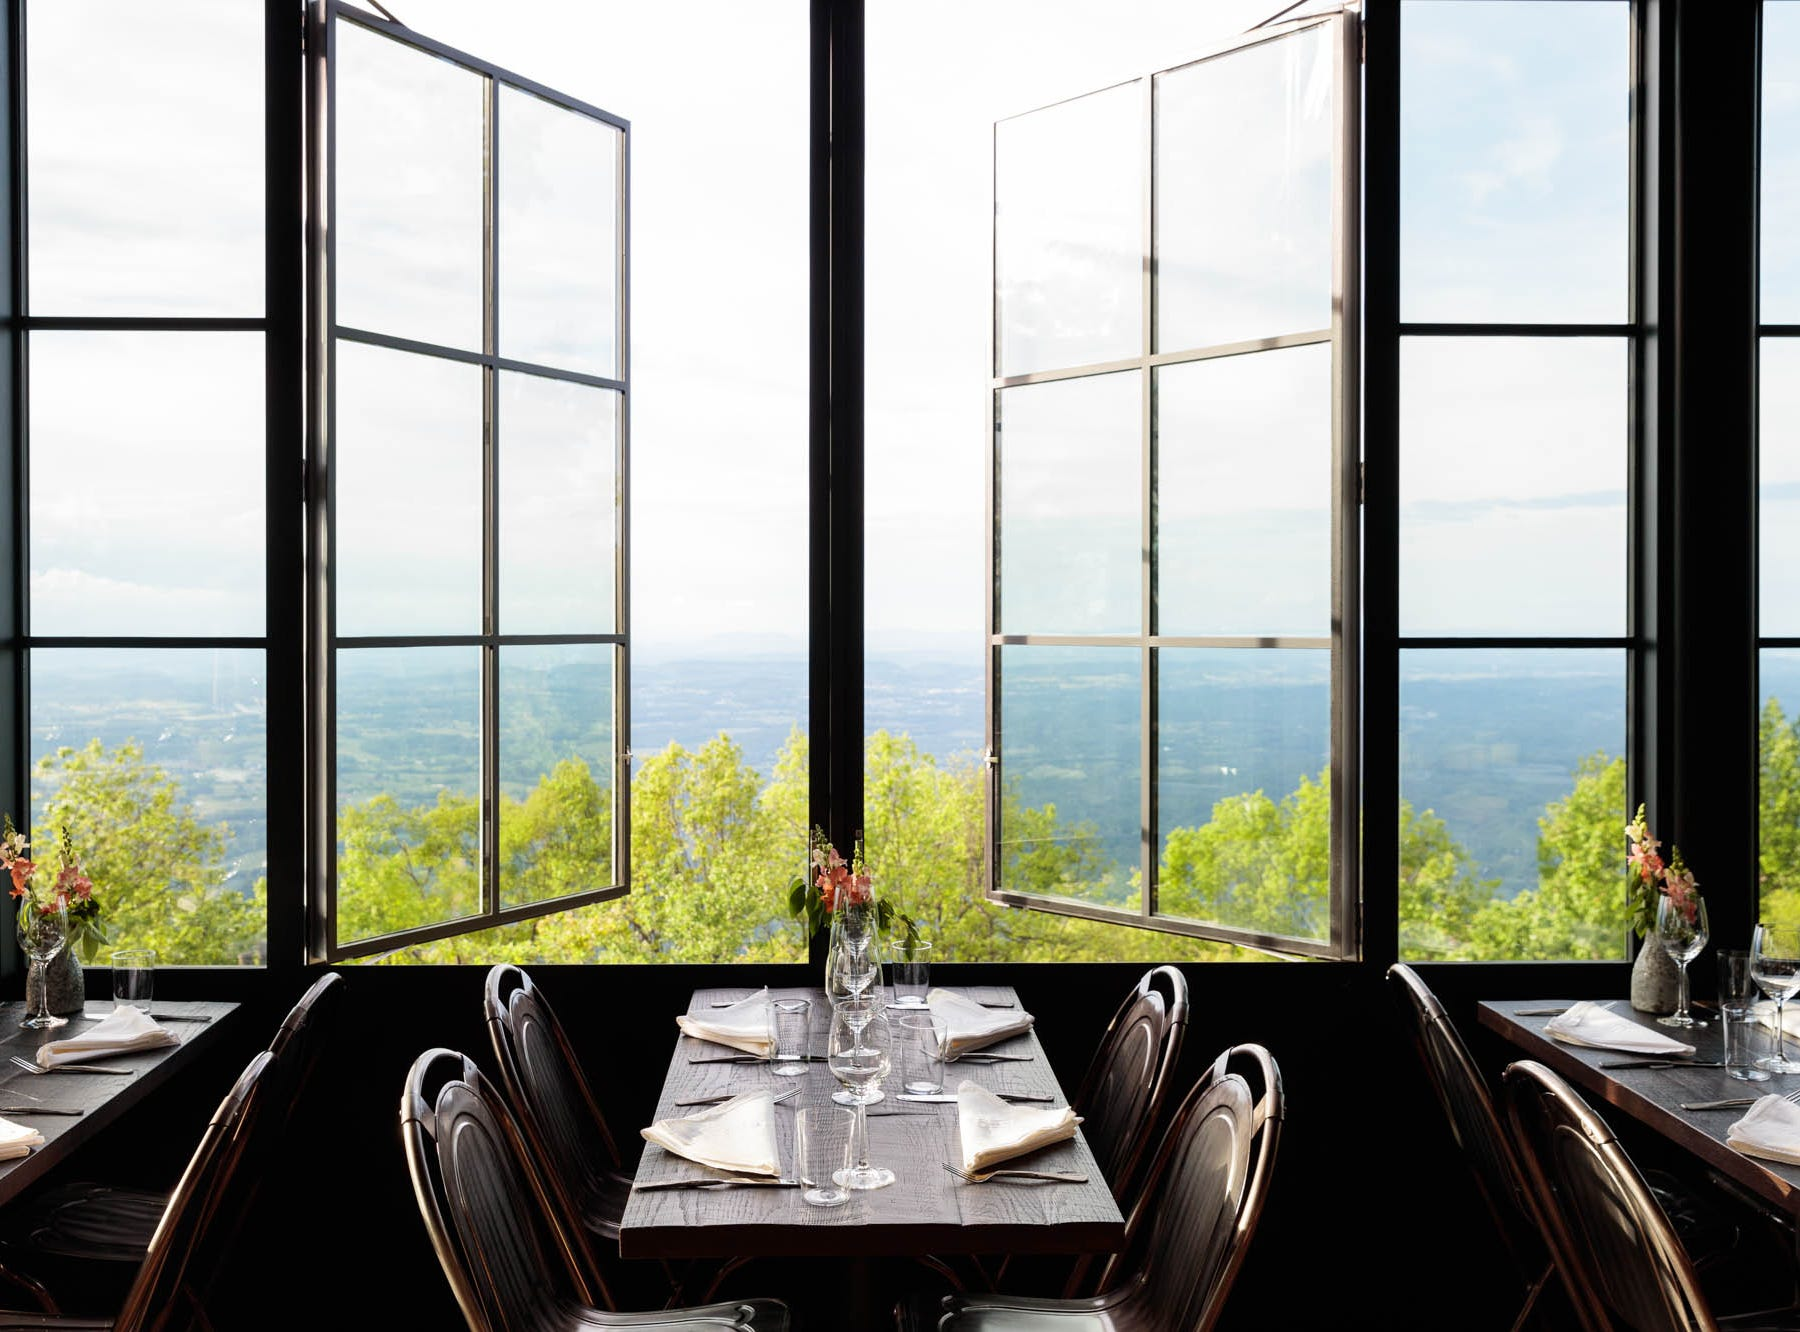 The views from Firetower restaurant on top of Blackberry Mountain, the luxury resort that just opened in Walland, Tennessee.